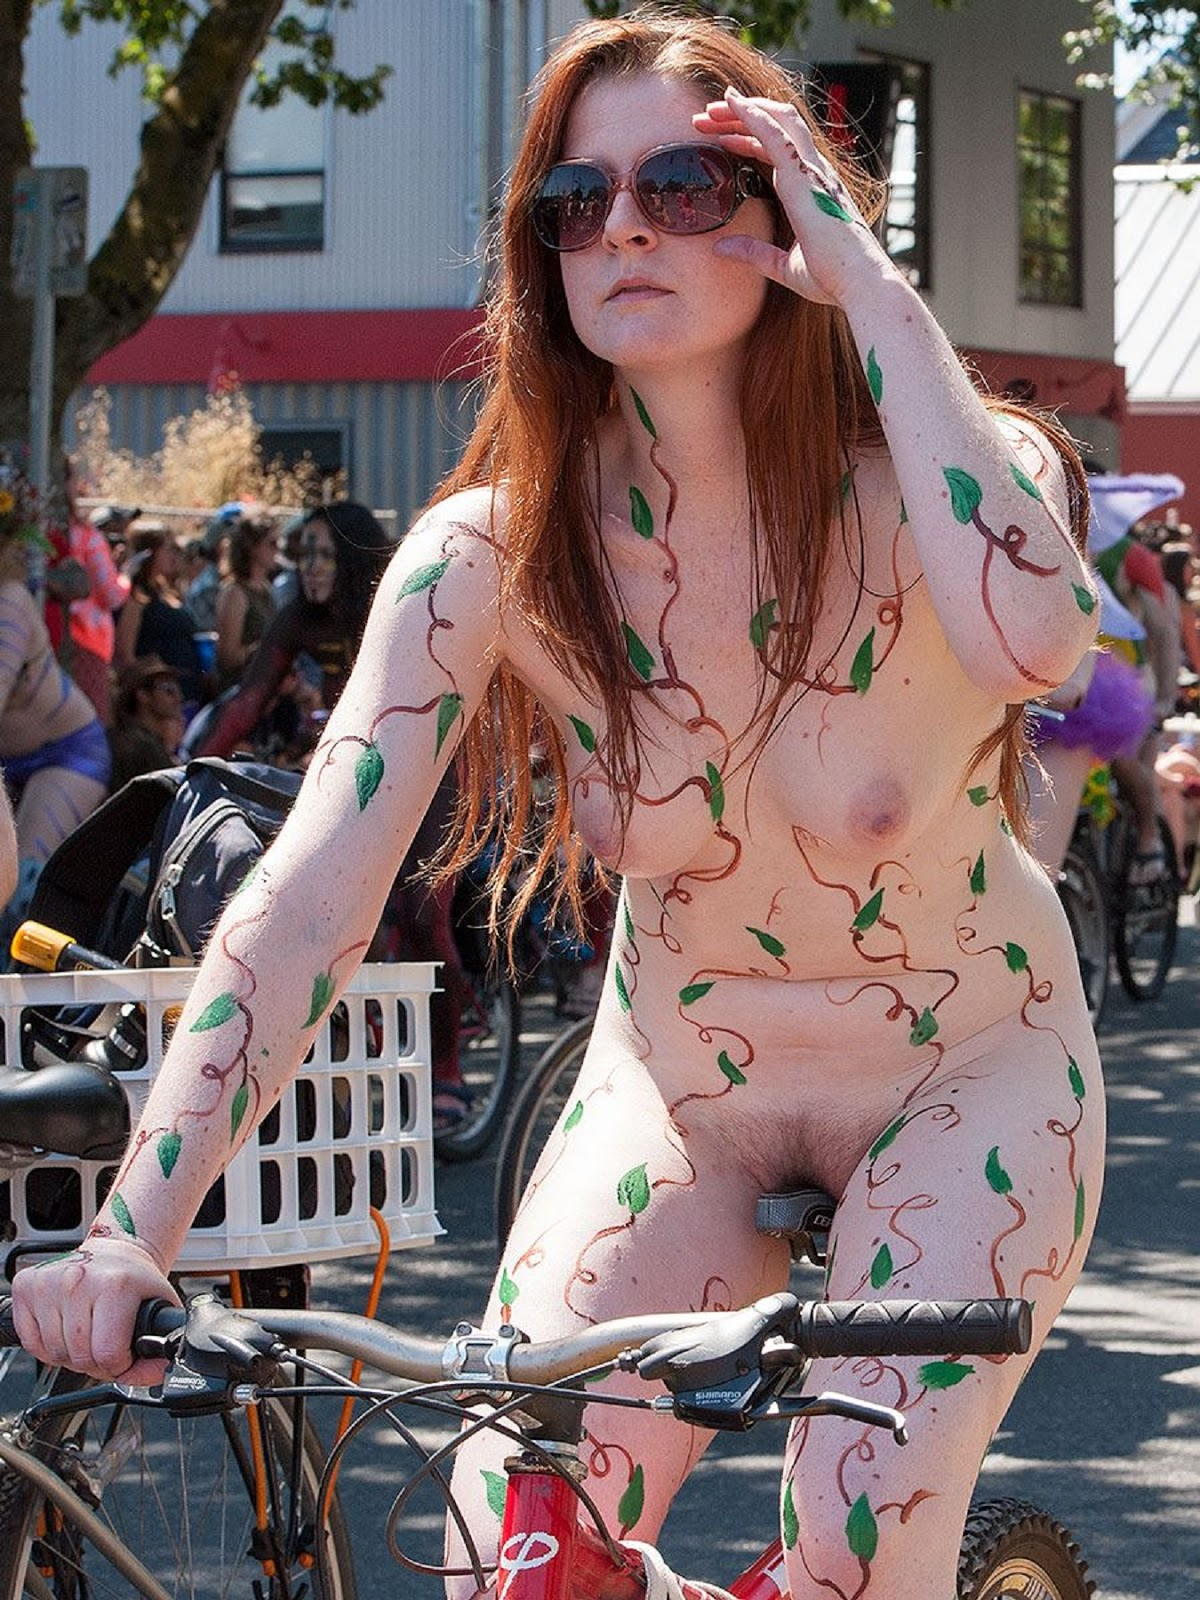 nude bicycle parade hairy